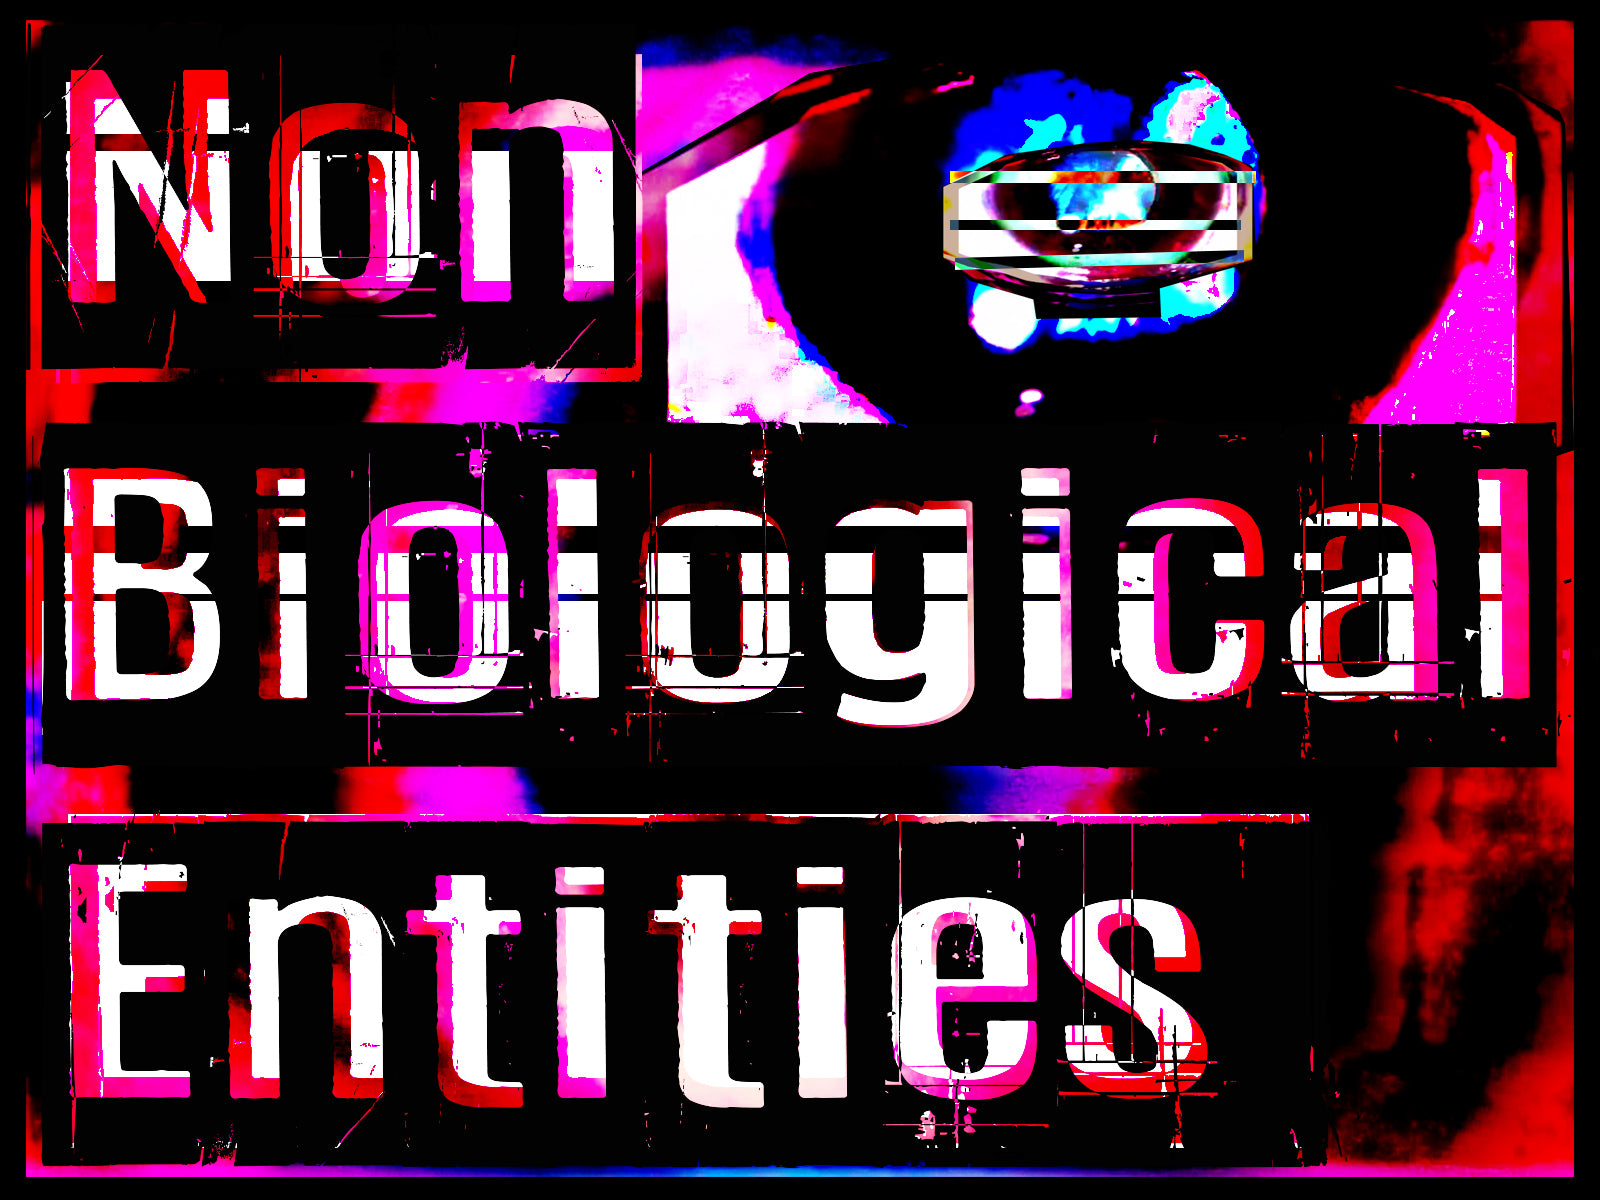 NON BIOLOGICAL ENTITIES